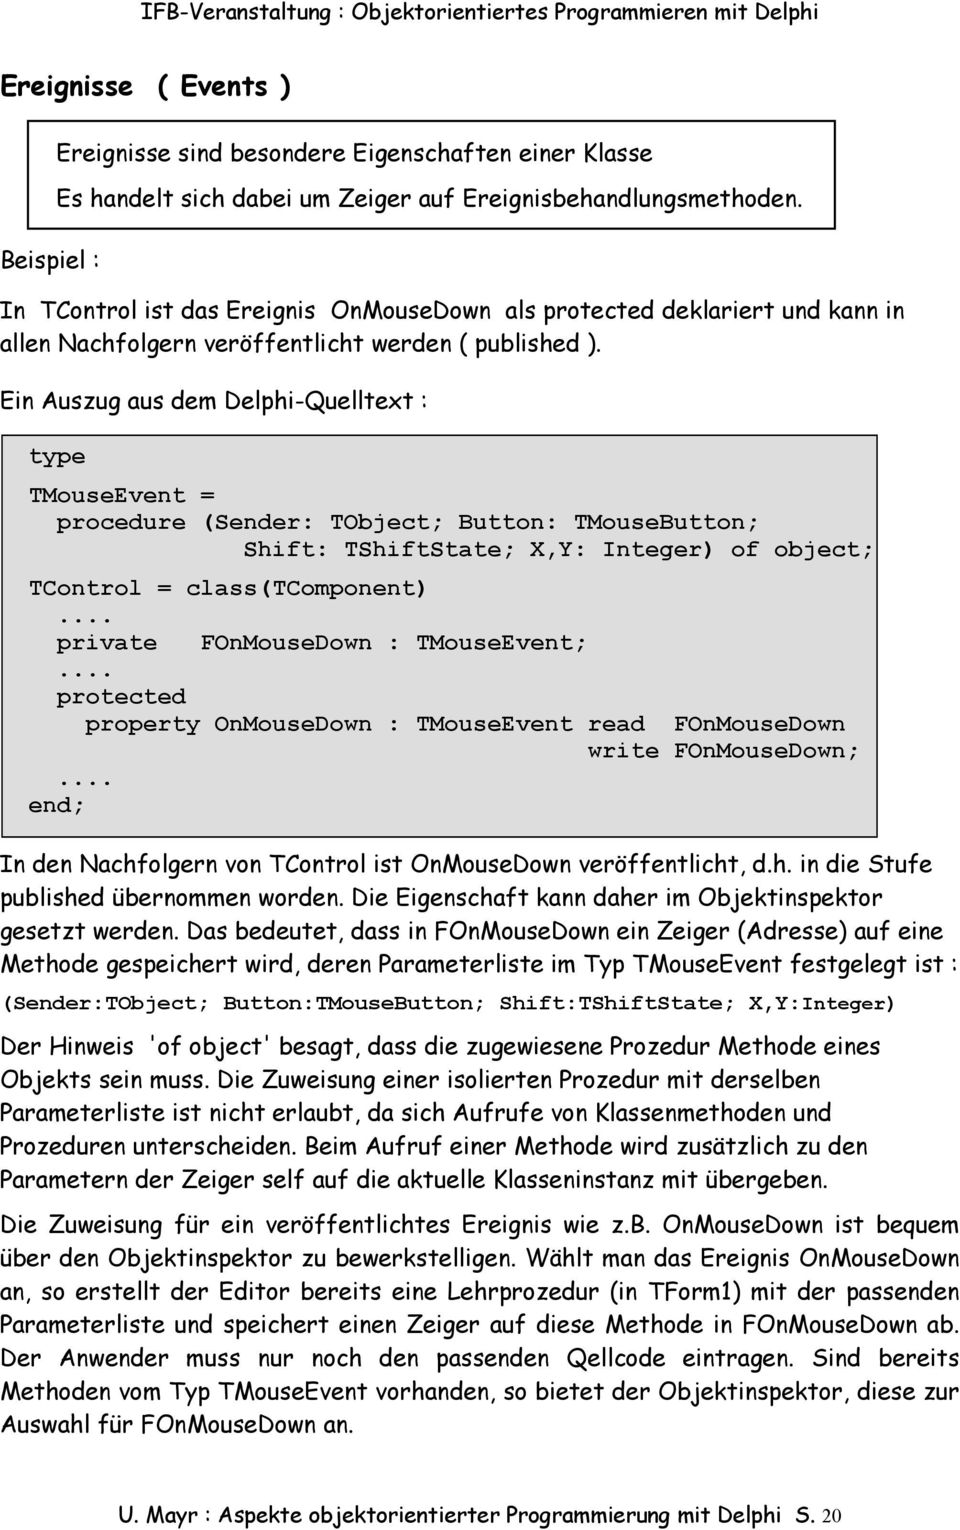 Ein Auszug aus dem Delphi-Quelltext : type TMouseEvent = procedure (Sender: TObject; Button: TMouseButton; Shift: TShiftState; X,Y: Integer) of object; TControl = class(tcomponent).